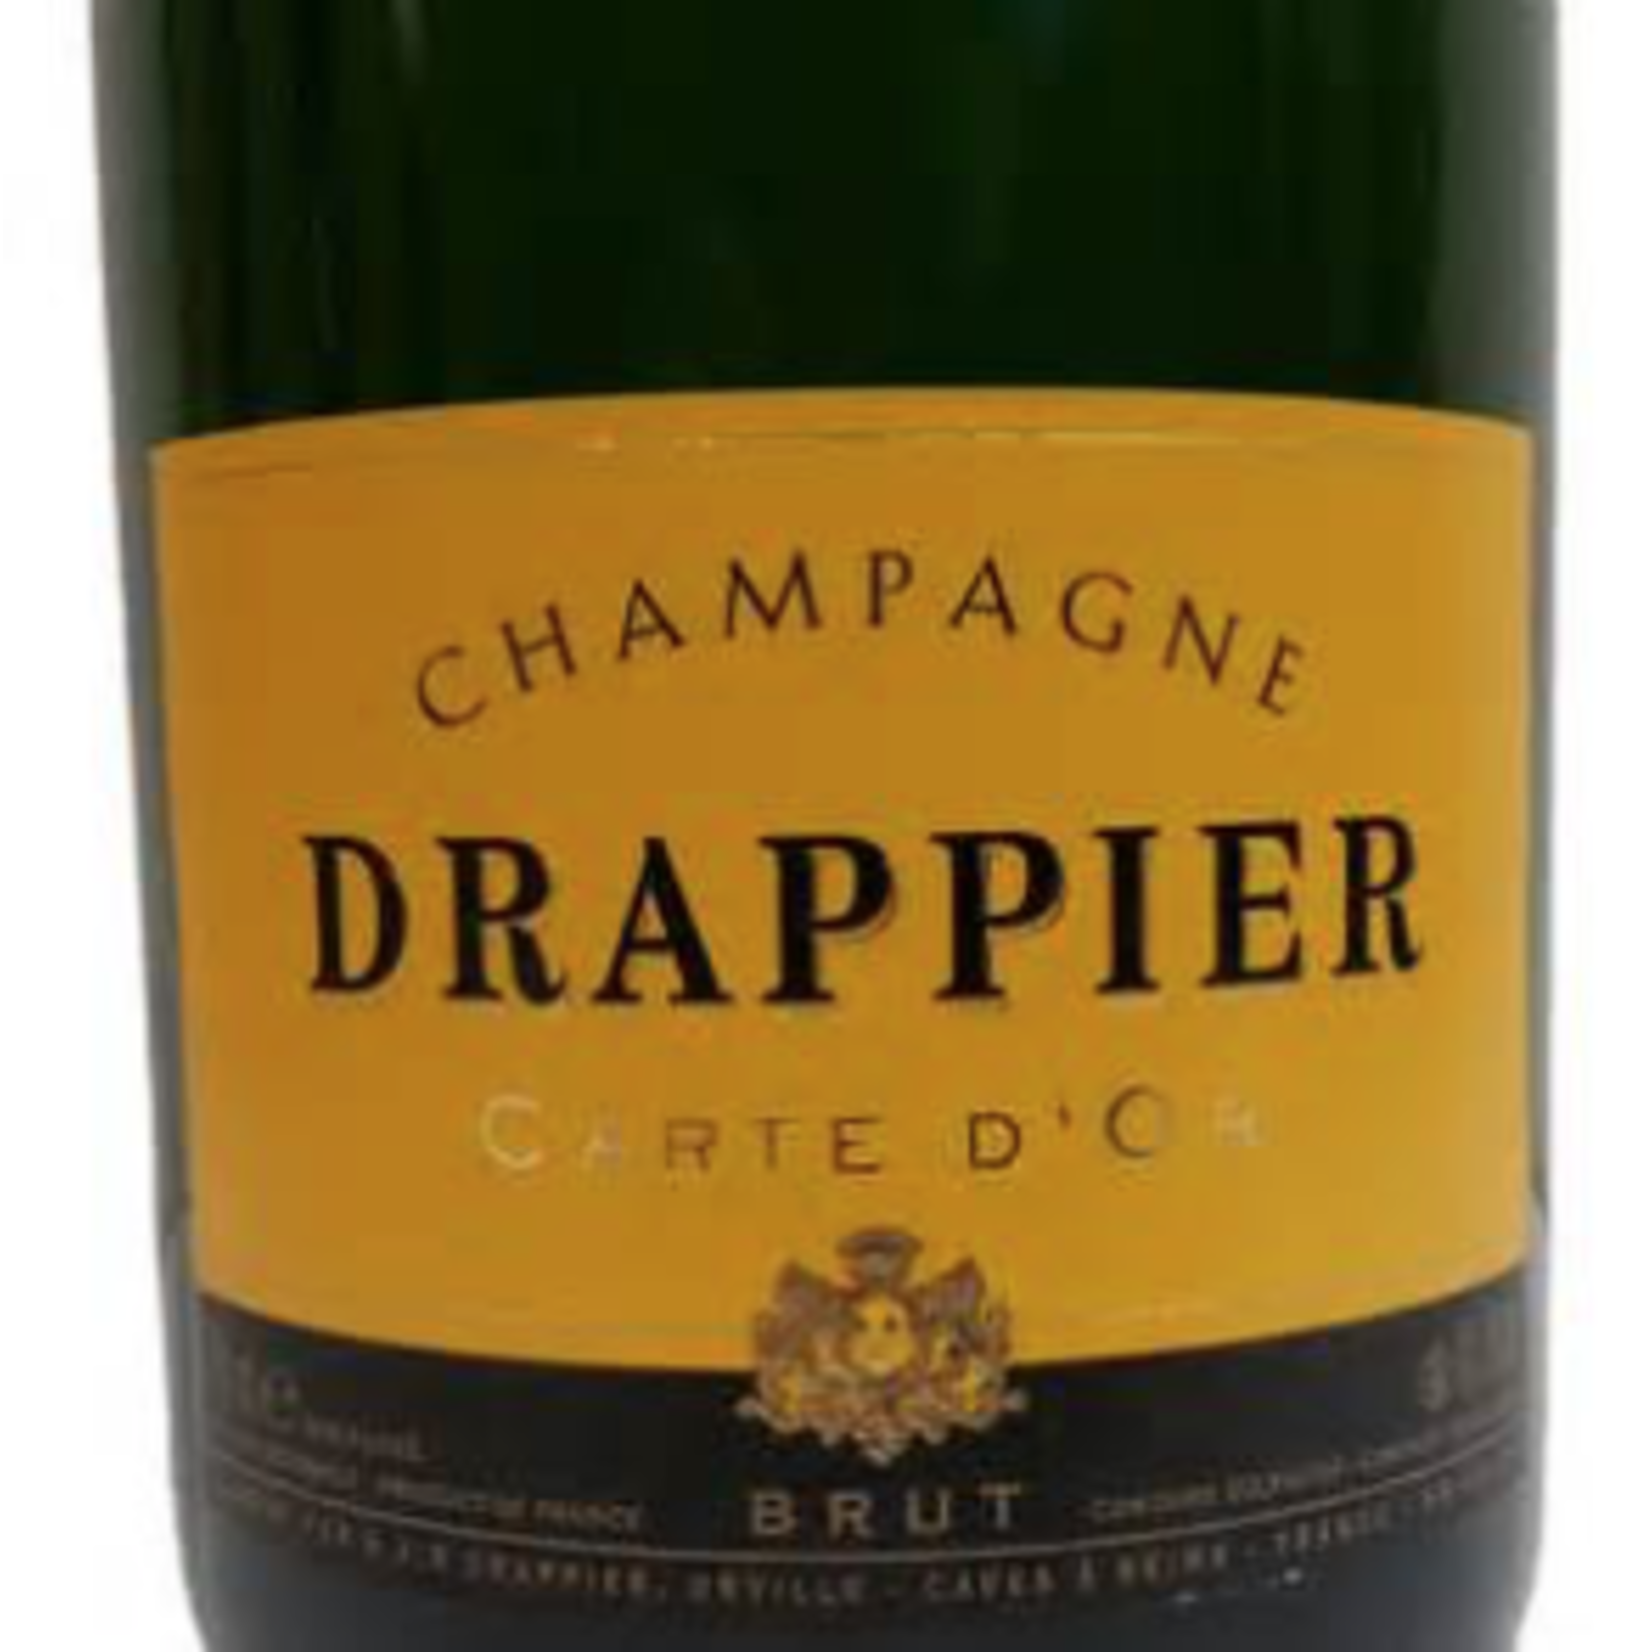 Drappier Drappier Carte D' Or Brut Champagne Champagne, France 90pts-WS